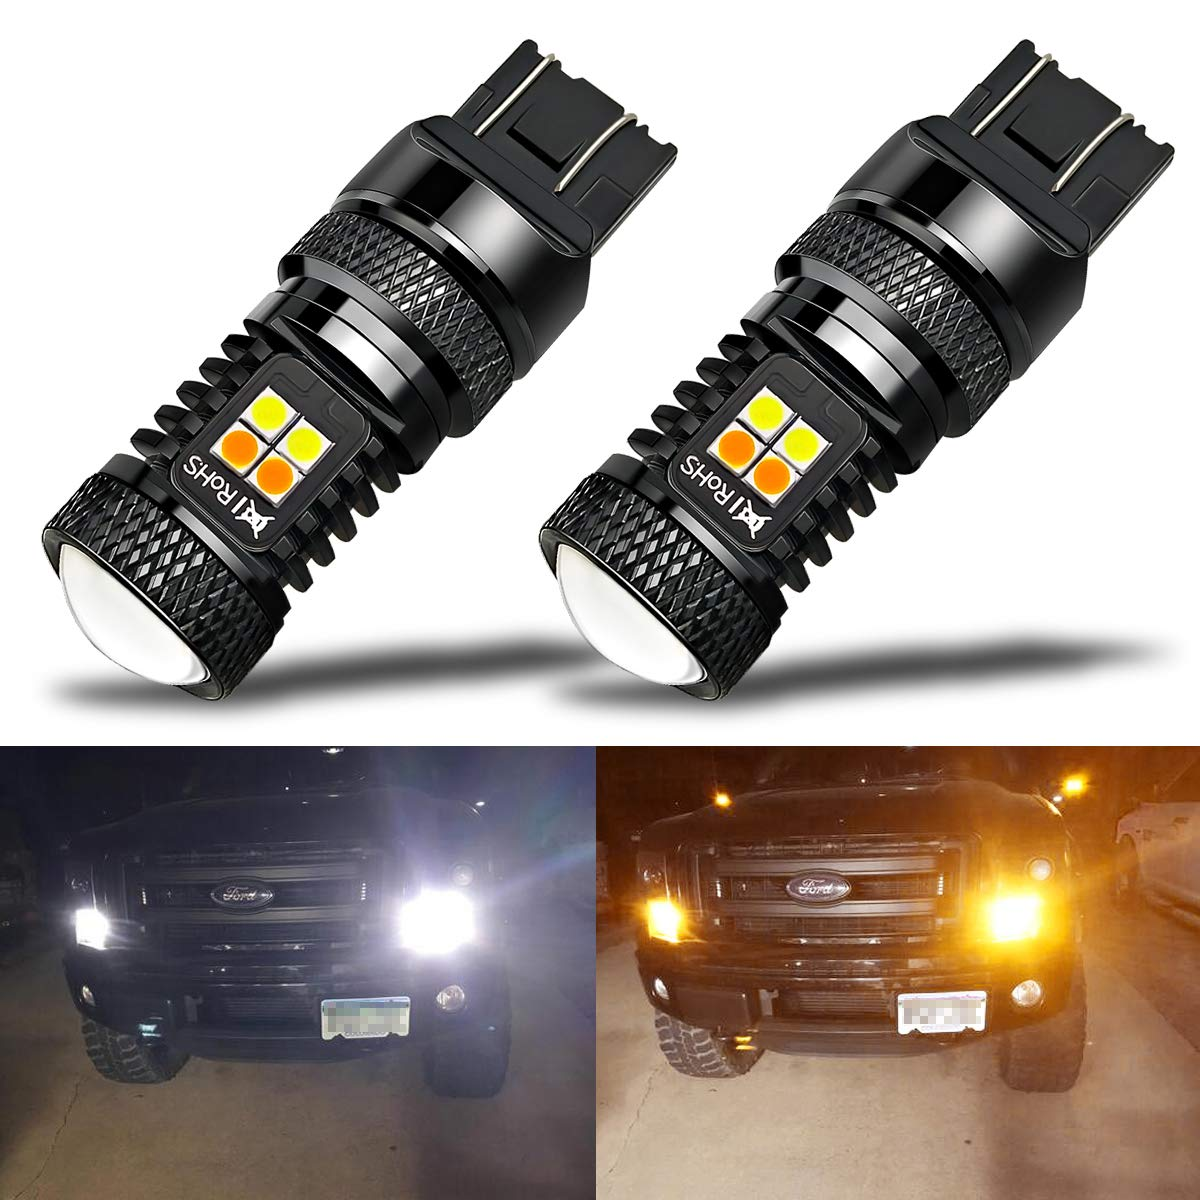 iBrightstar Extremely Bright 3030 Chipsets 7443 7444NA Switchback LED Bulbs with Projector Replacement for Daytime Running Lights/DRL and Turn Signal Lights, White/Amber